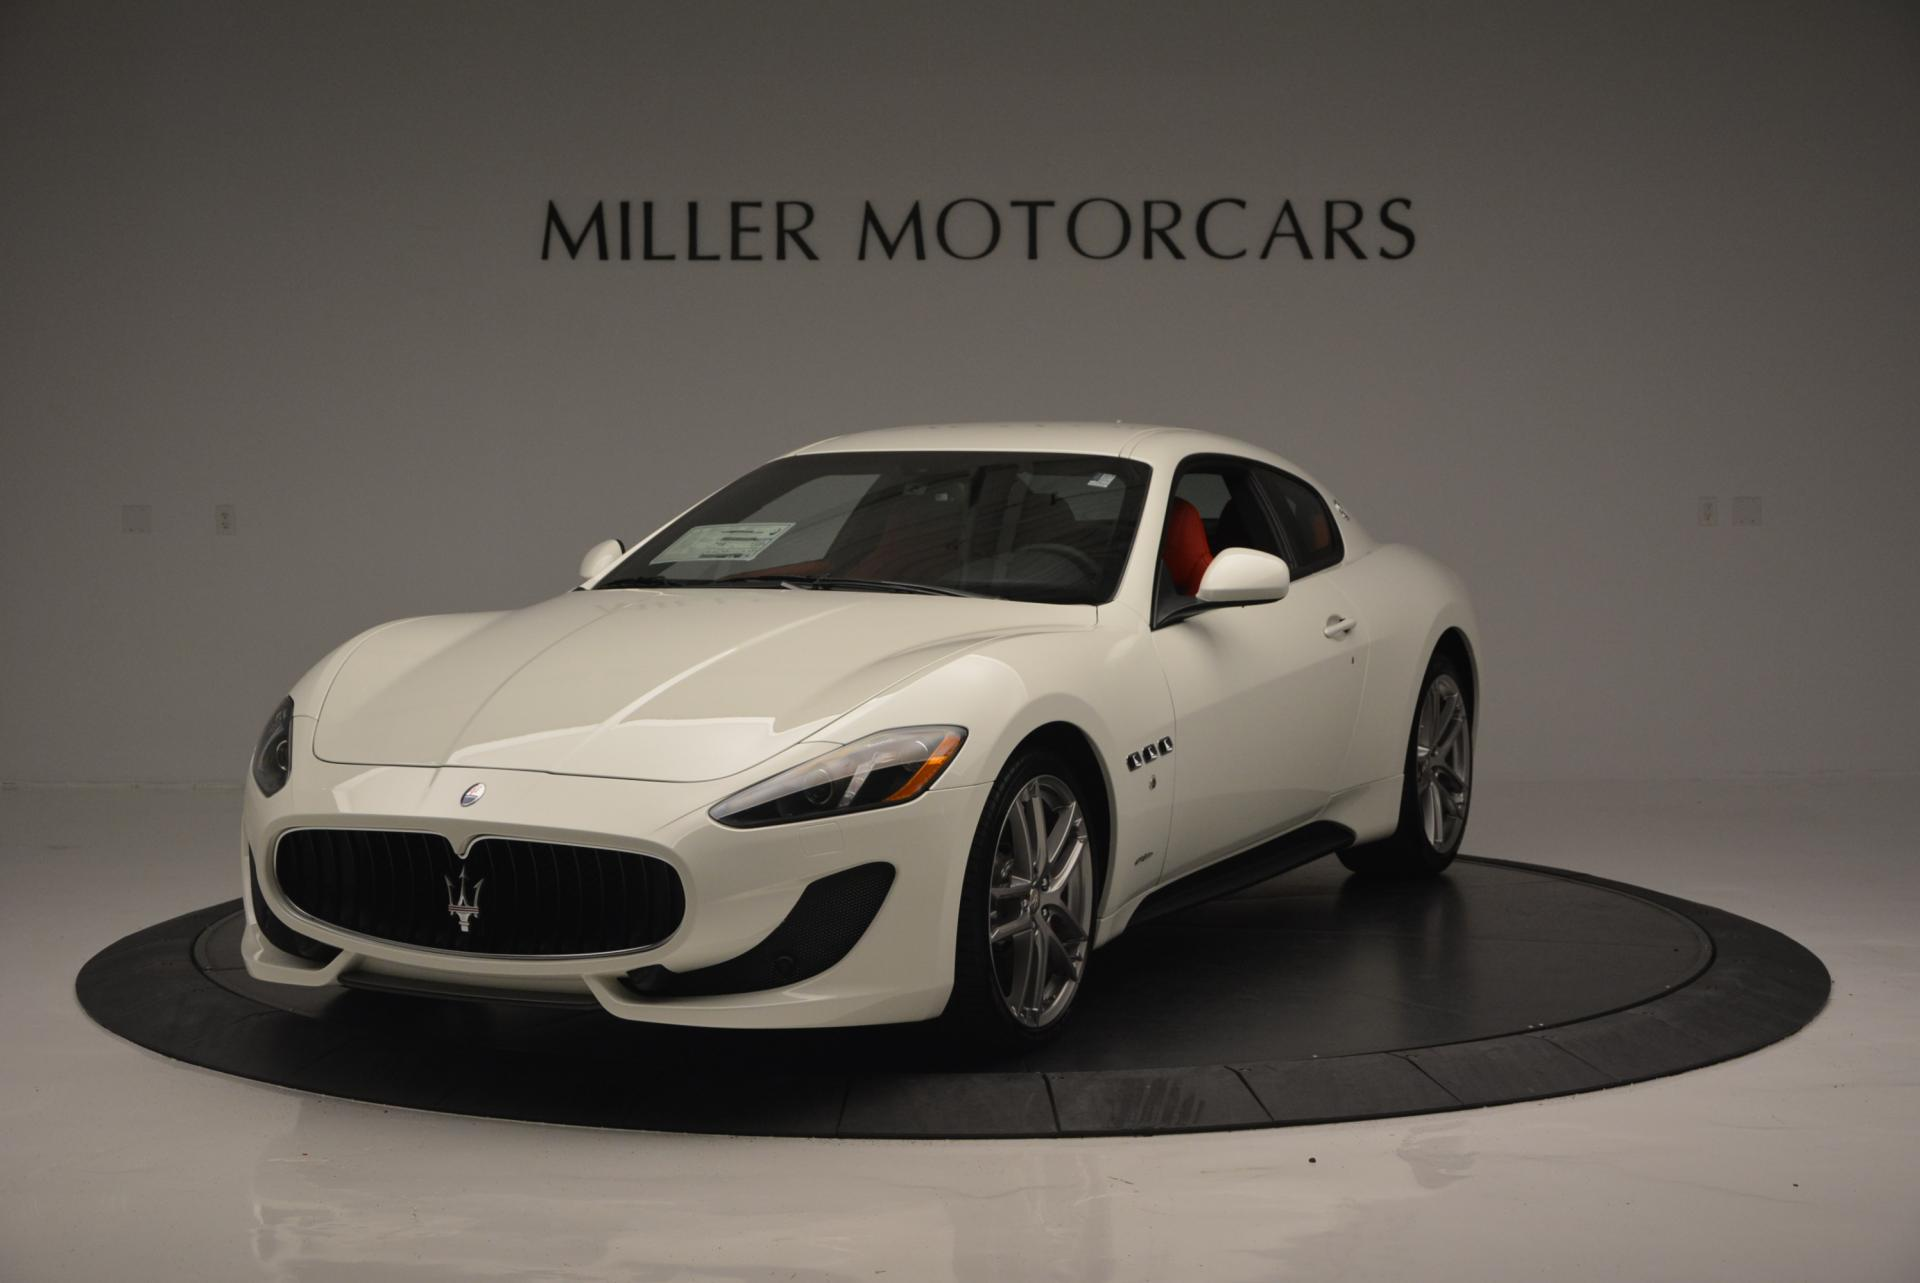 New 2017 Maserati GranTurismo Sport for sale Sold at Bentley Greenwich in Greenwich CT 06830 1